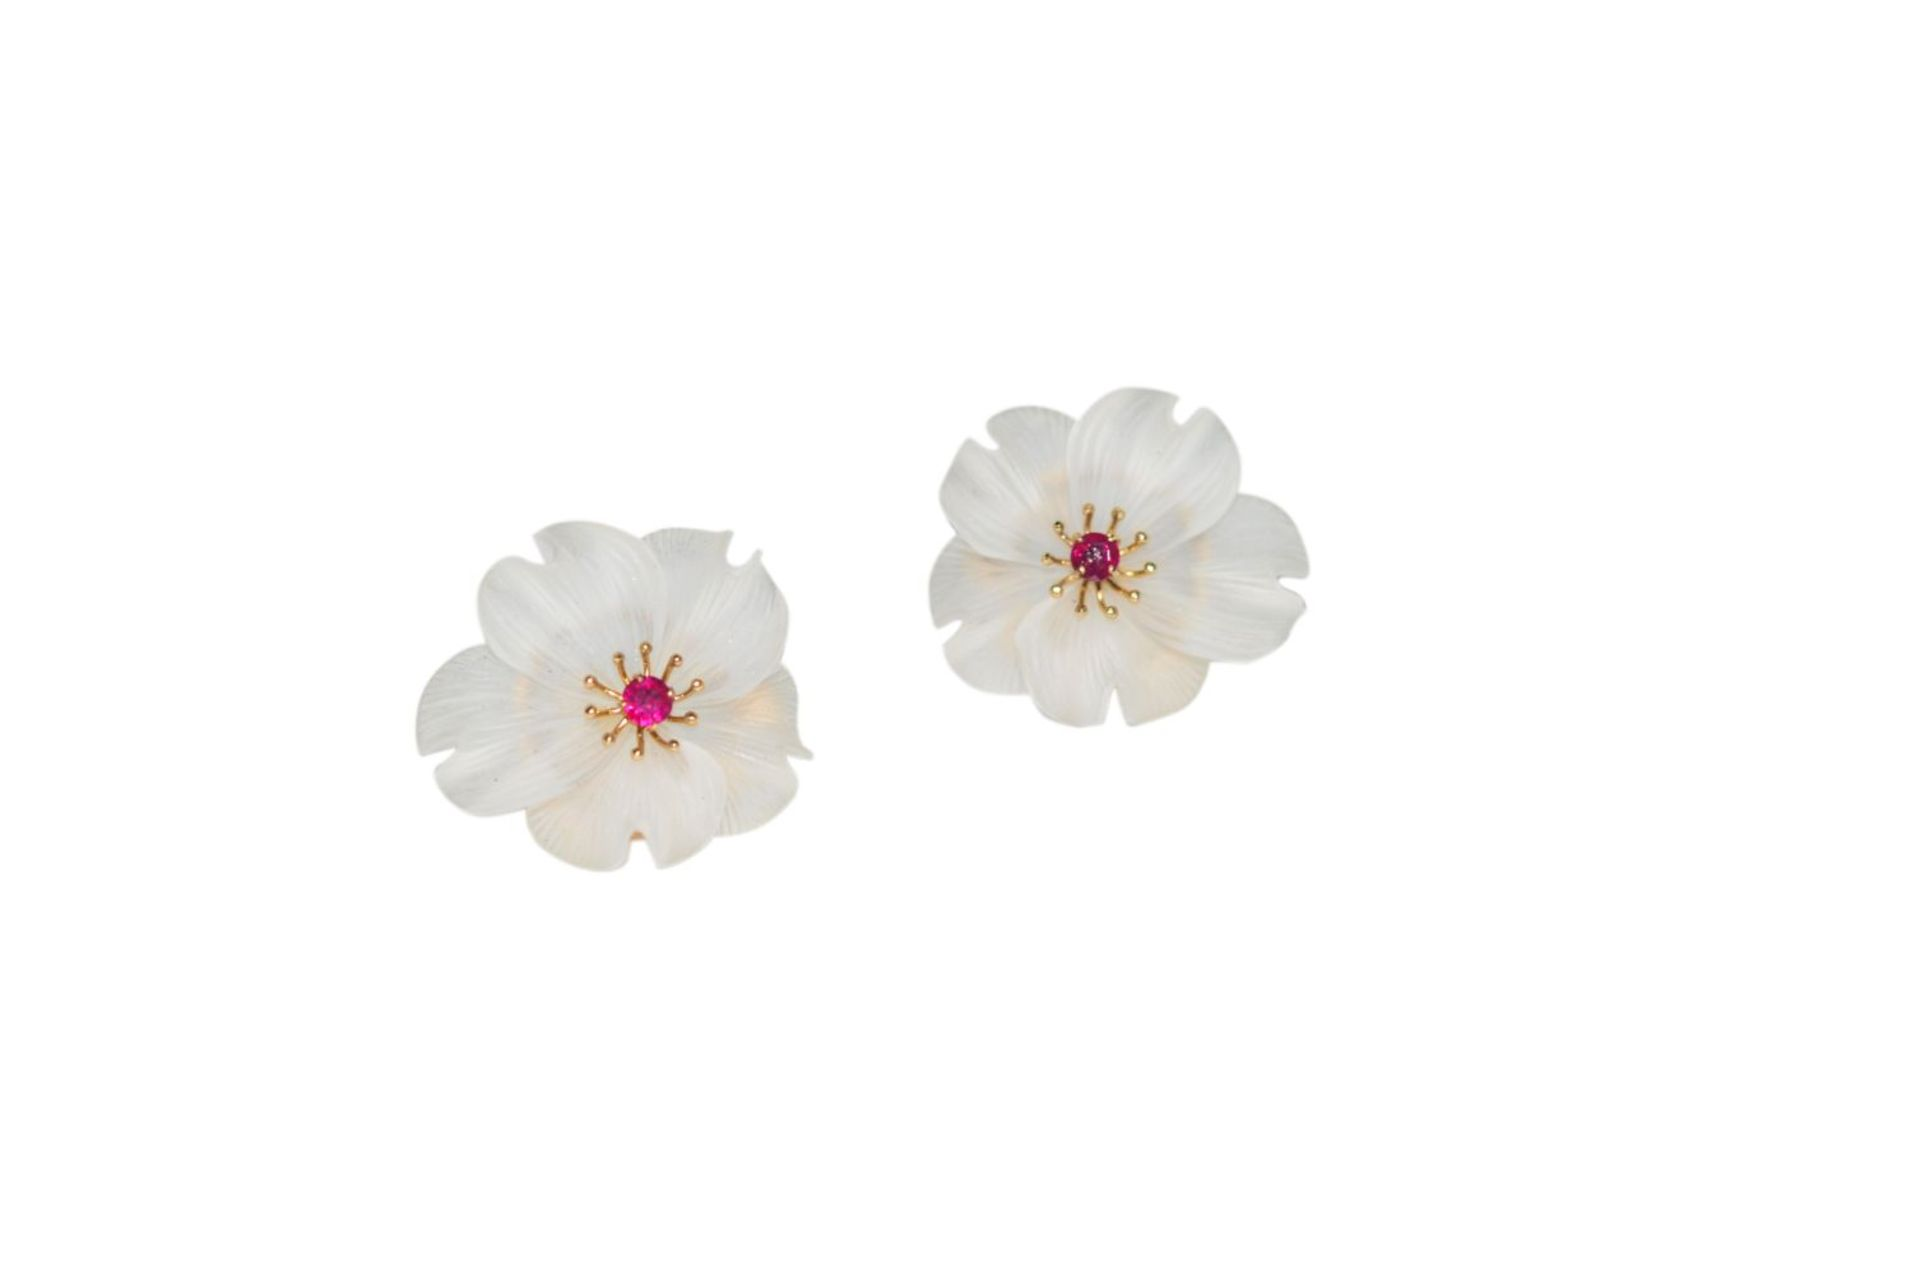 Los 115 - Ear clipsEarclip, carved Rock crystal flowers with delicate gold mounting, patents without